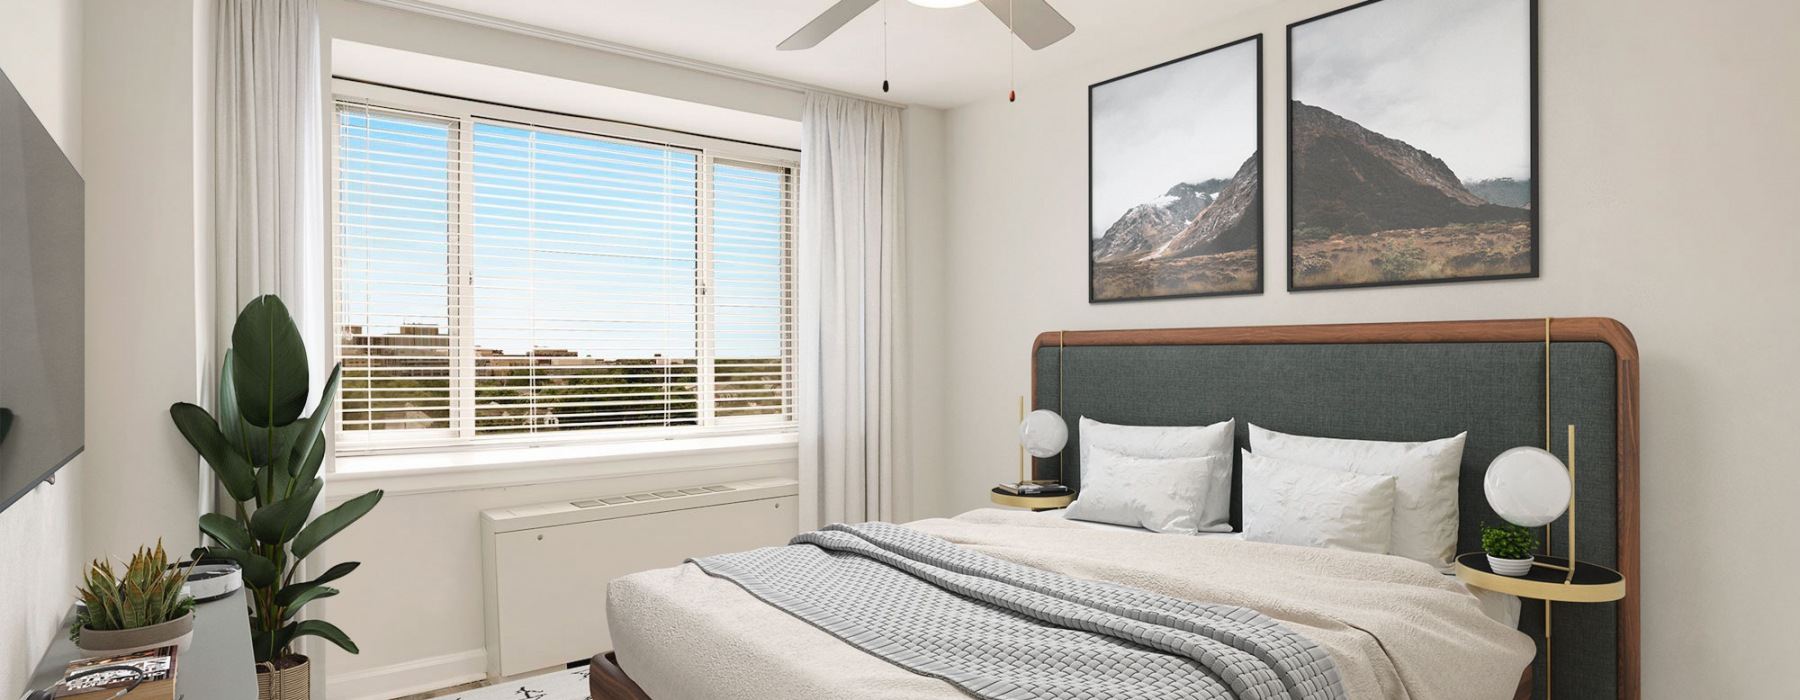 Bright Bedroom with Large window